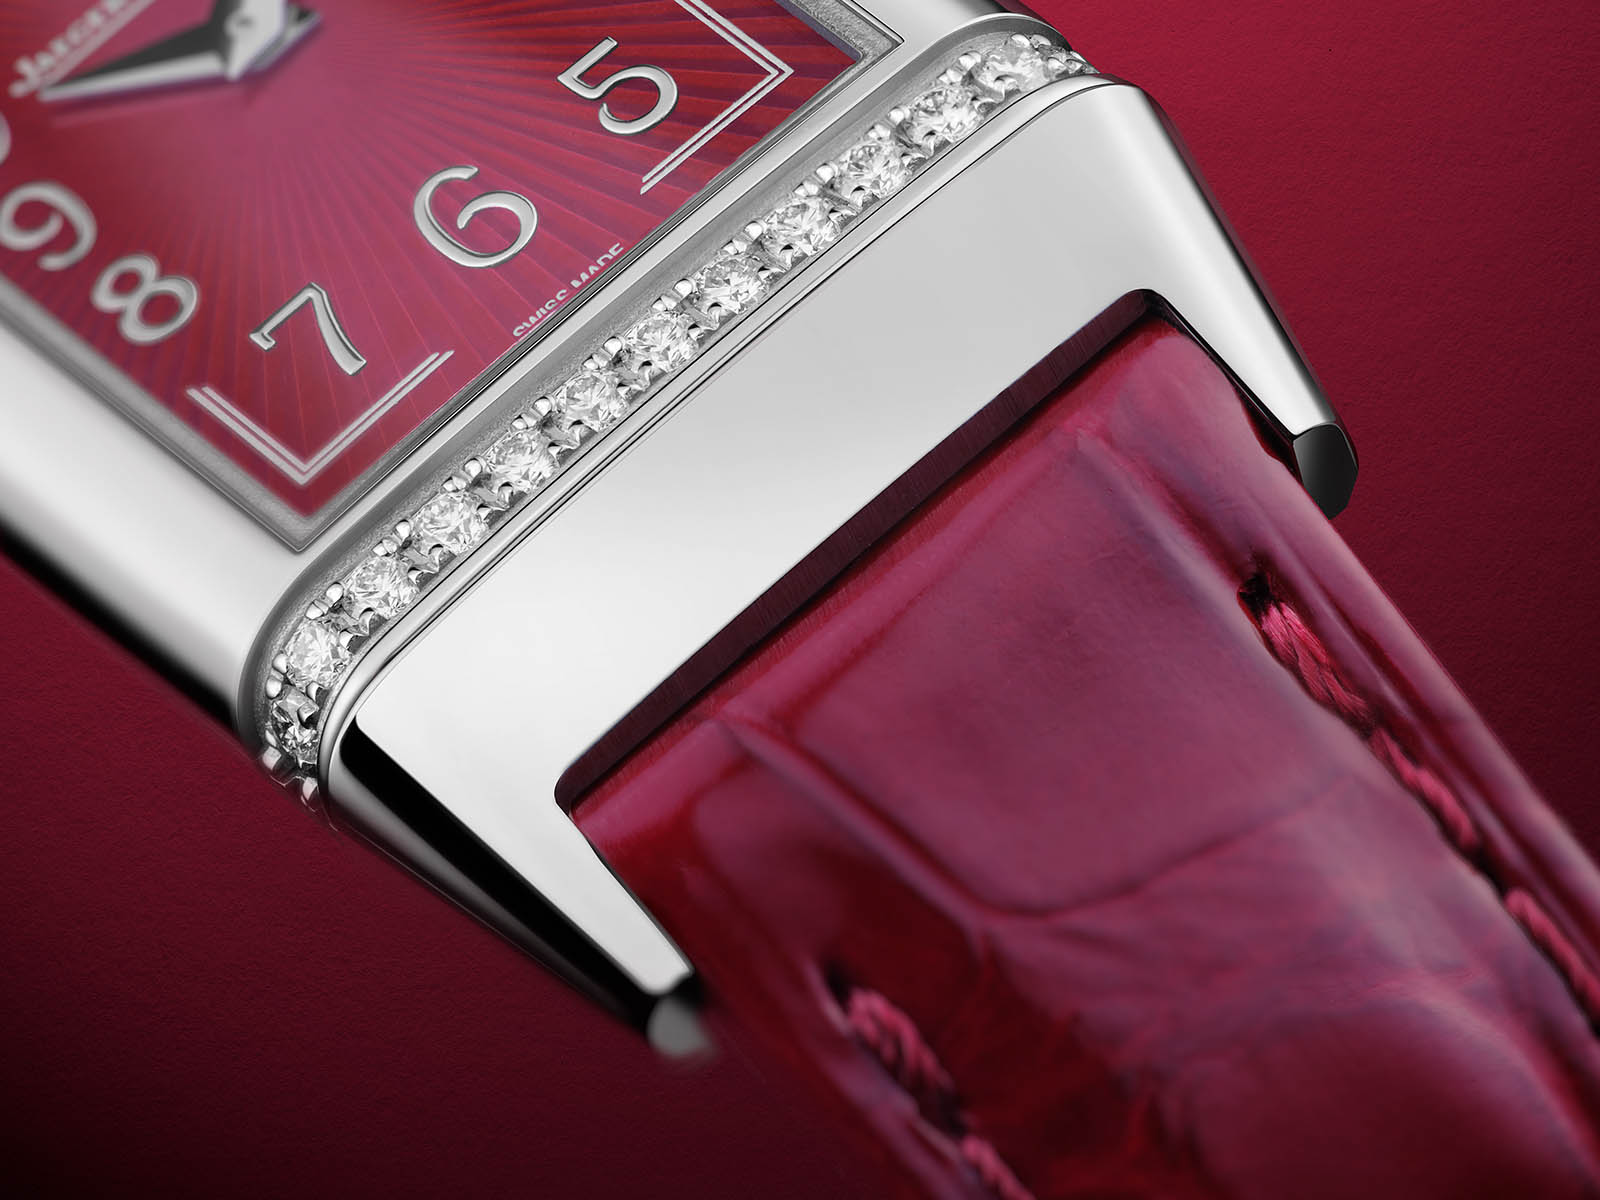 q3288560-jaeger-lecoultre-reverso-one-red-wine-4.jpg